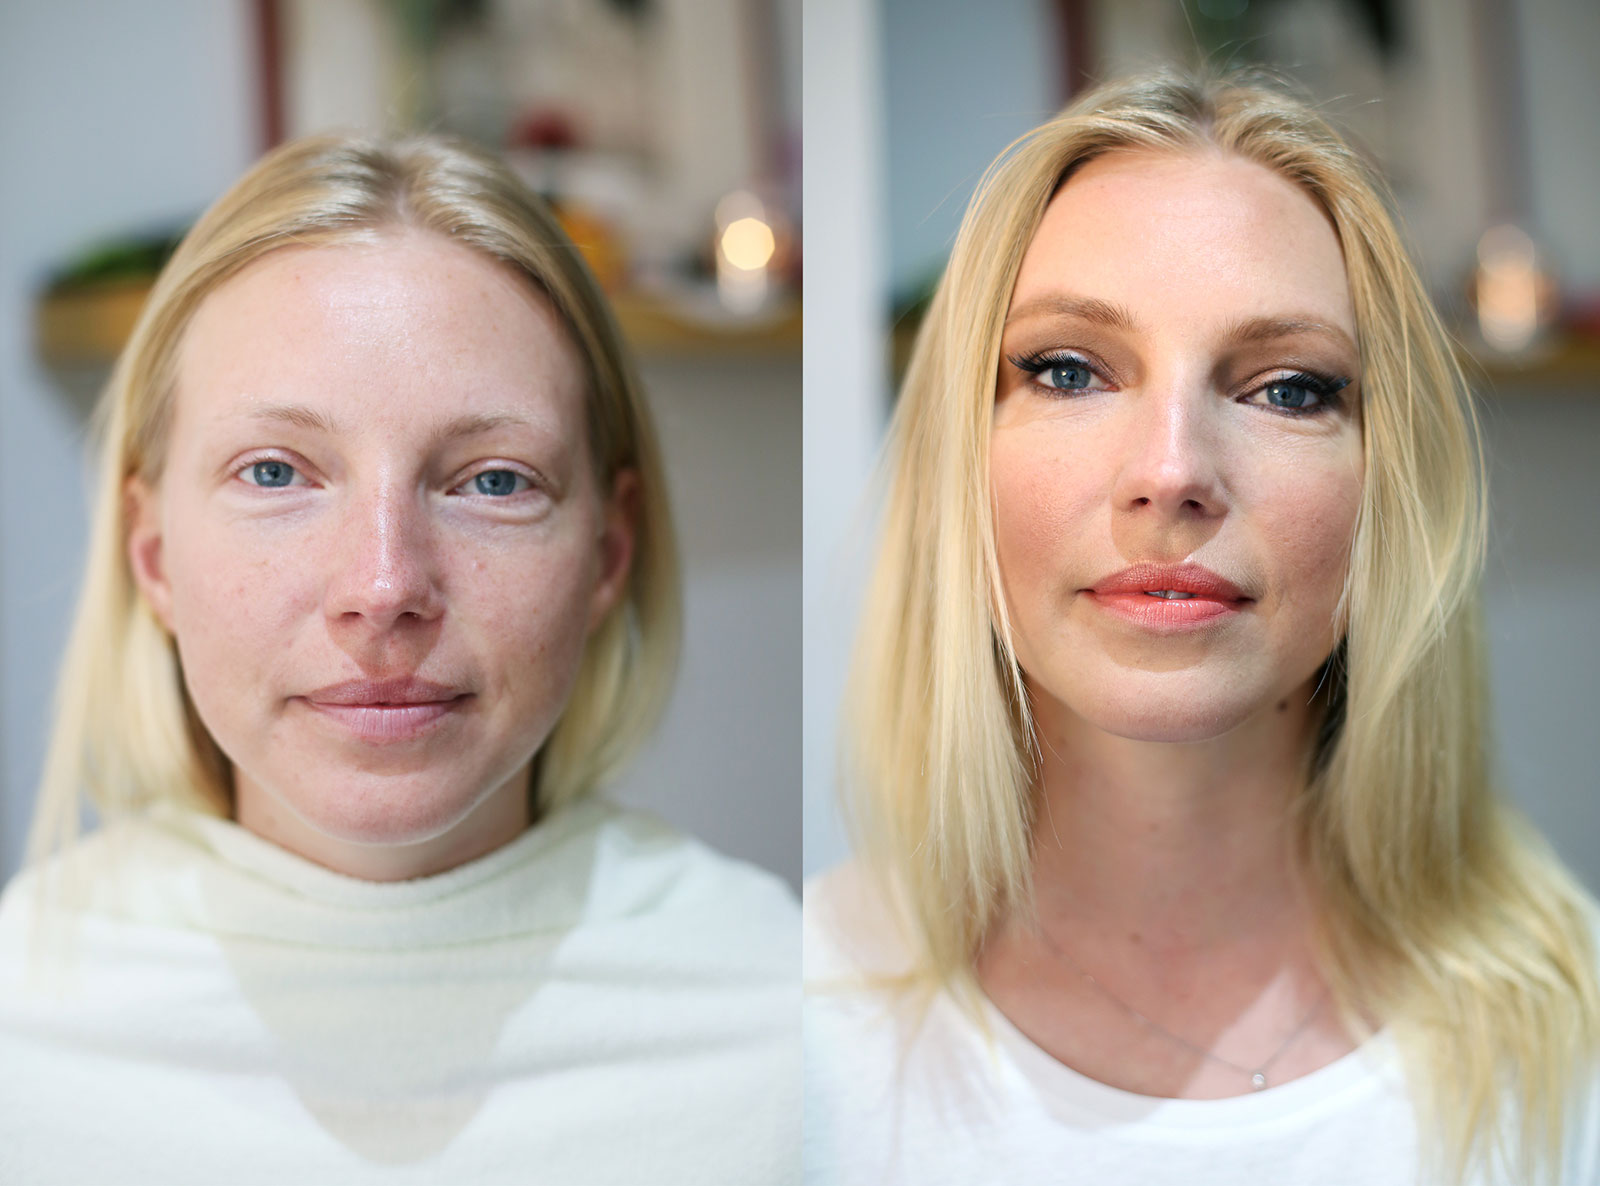 Before and after - how make up makes a difference